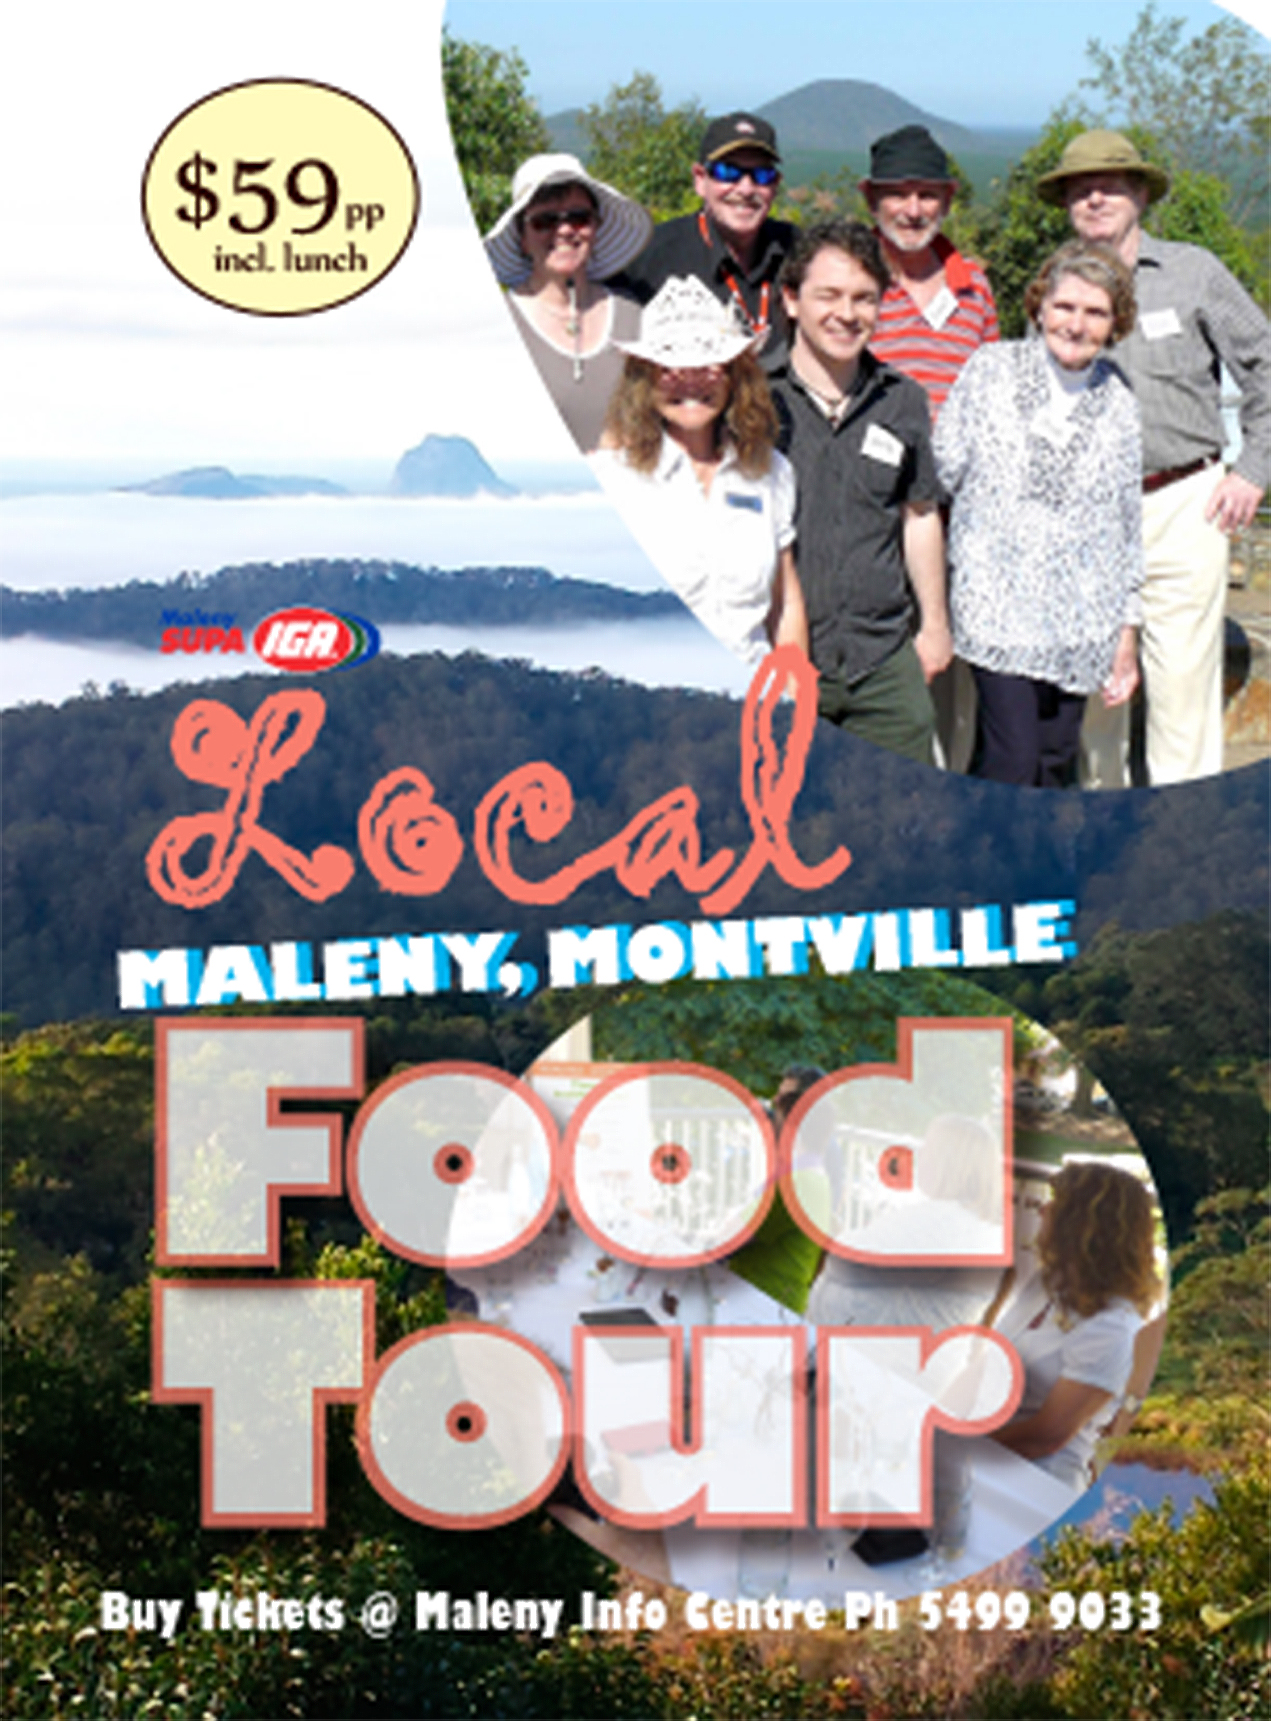 Maleny Montville Local Food Tours